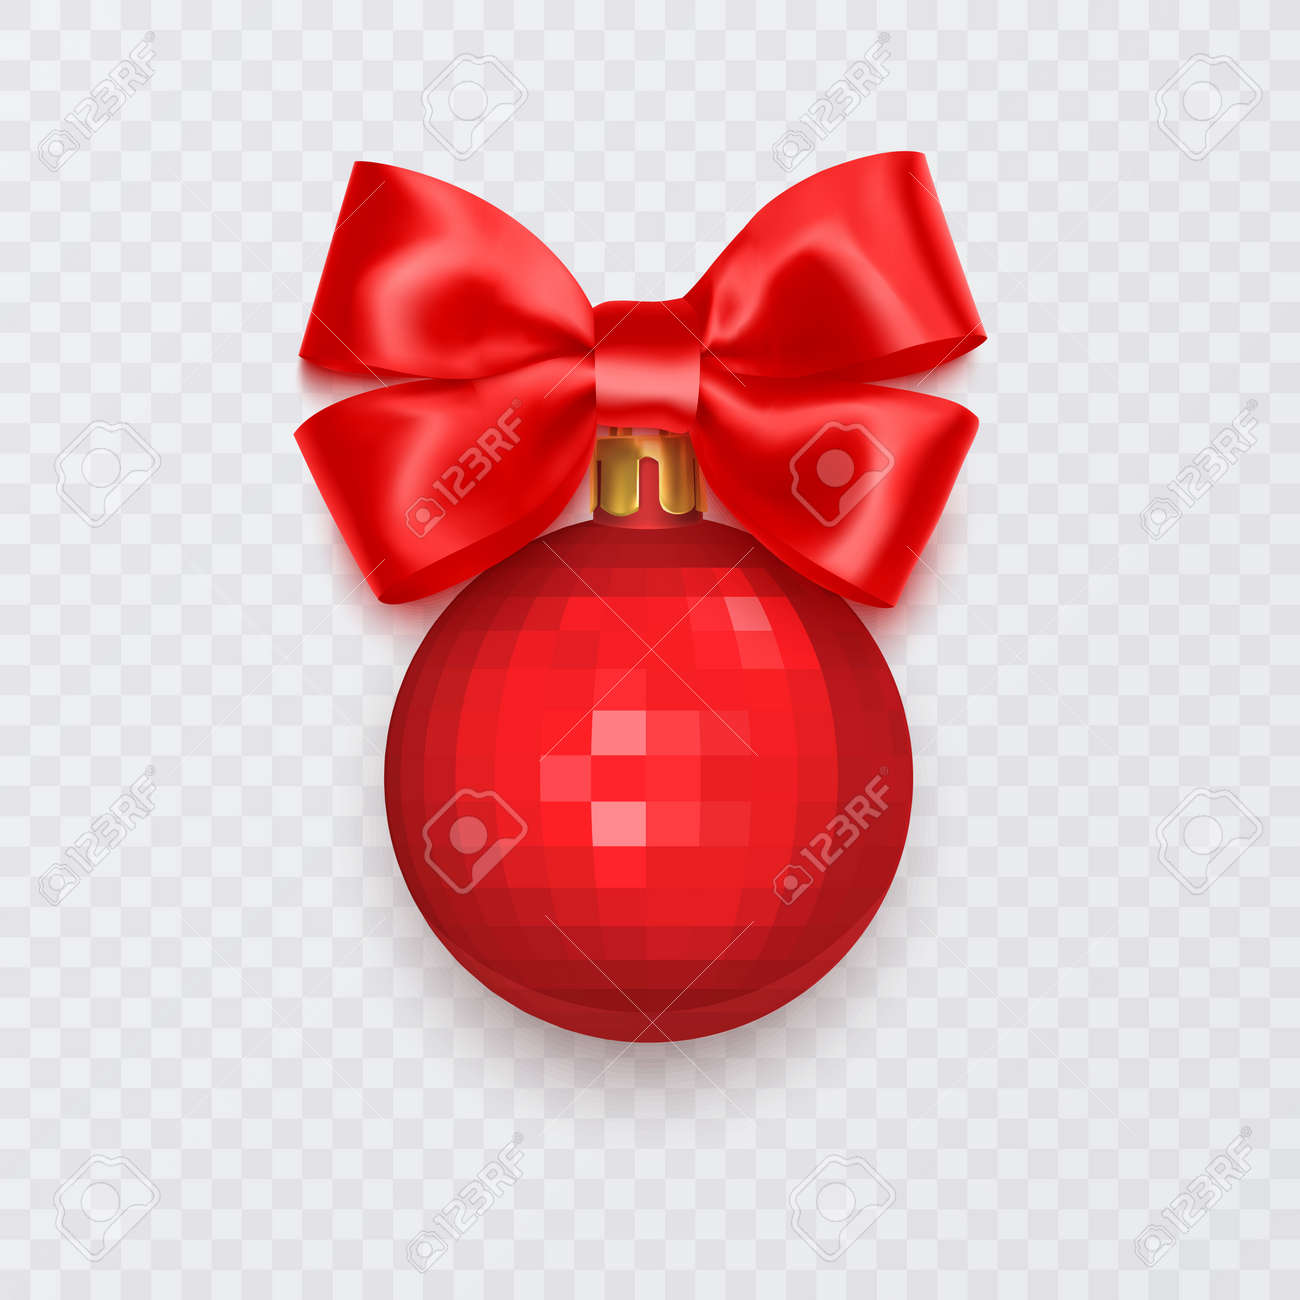 Red Christmas ball with bow. New Year decoration isolated on white background, Vector illustration - 173922468